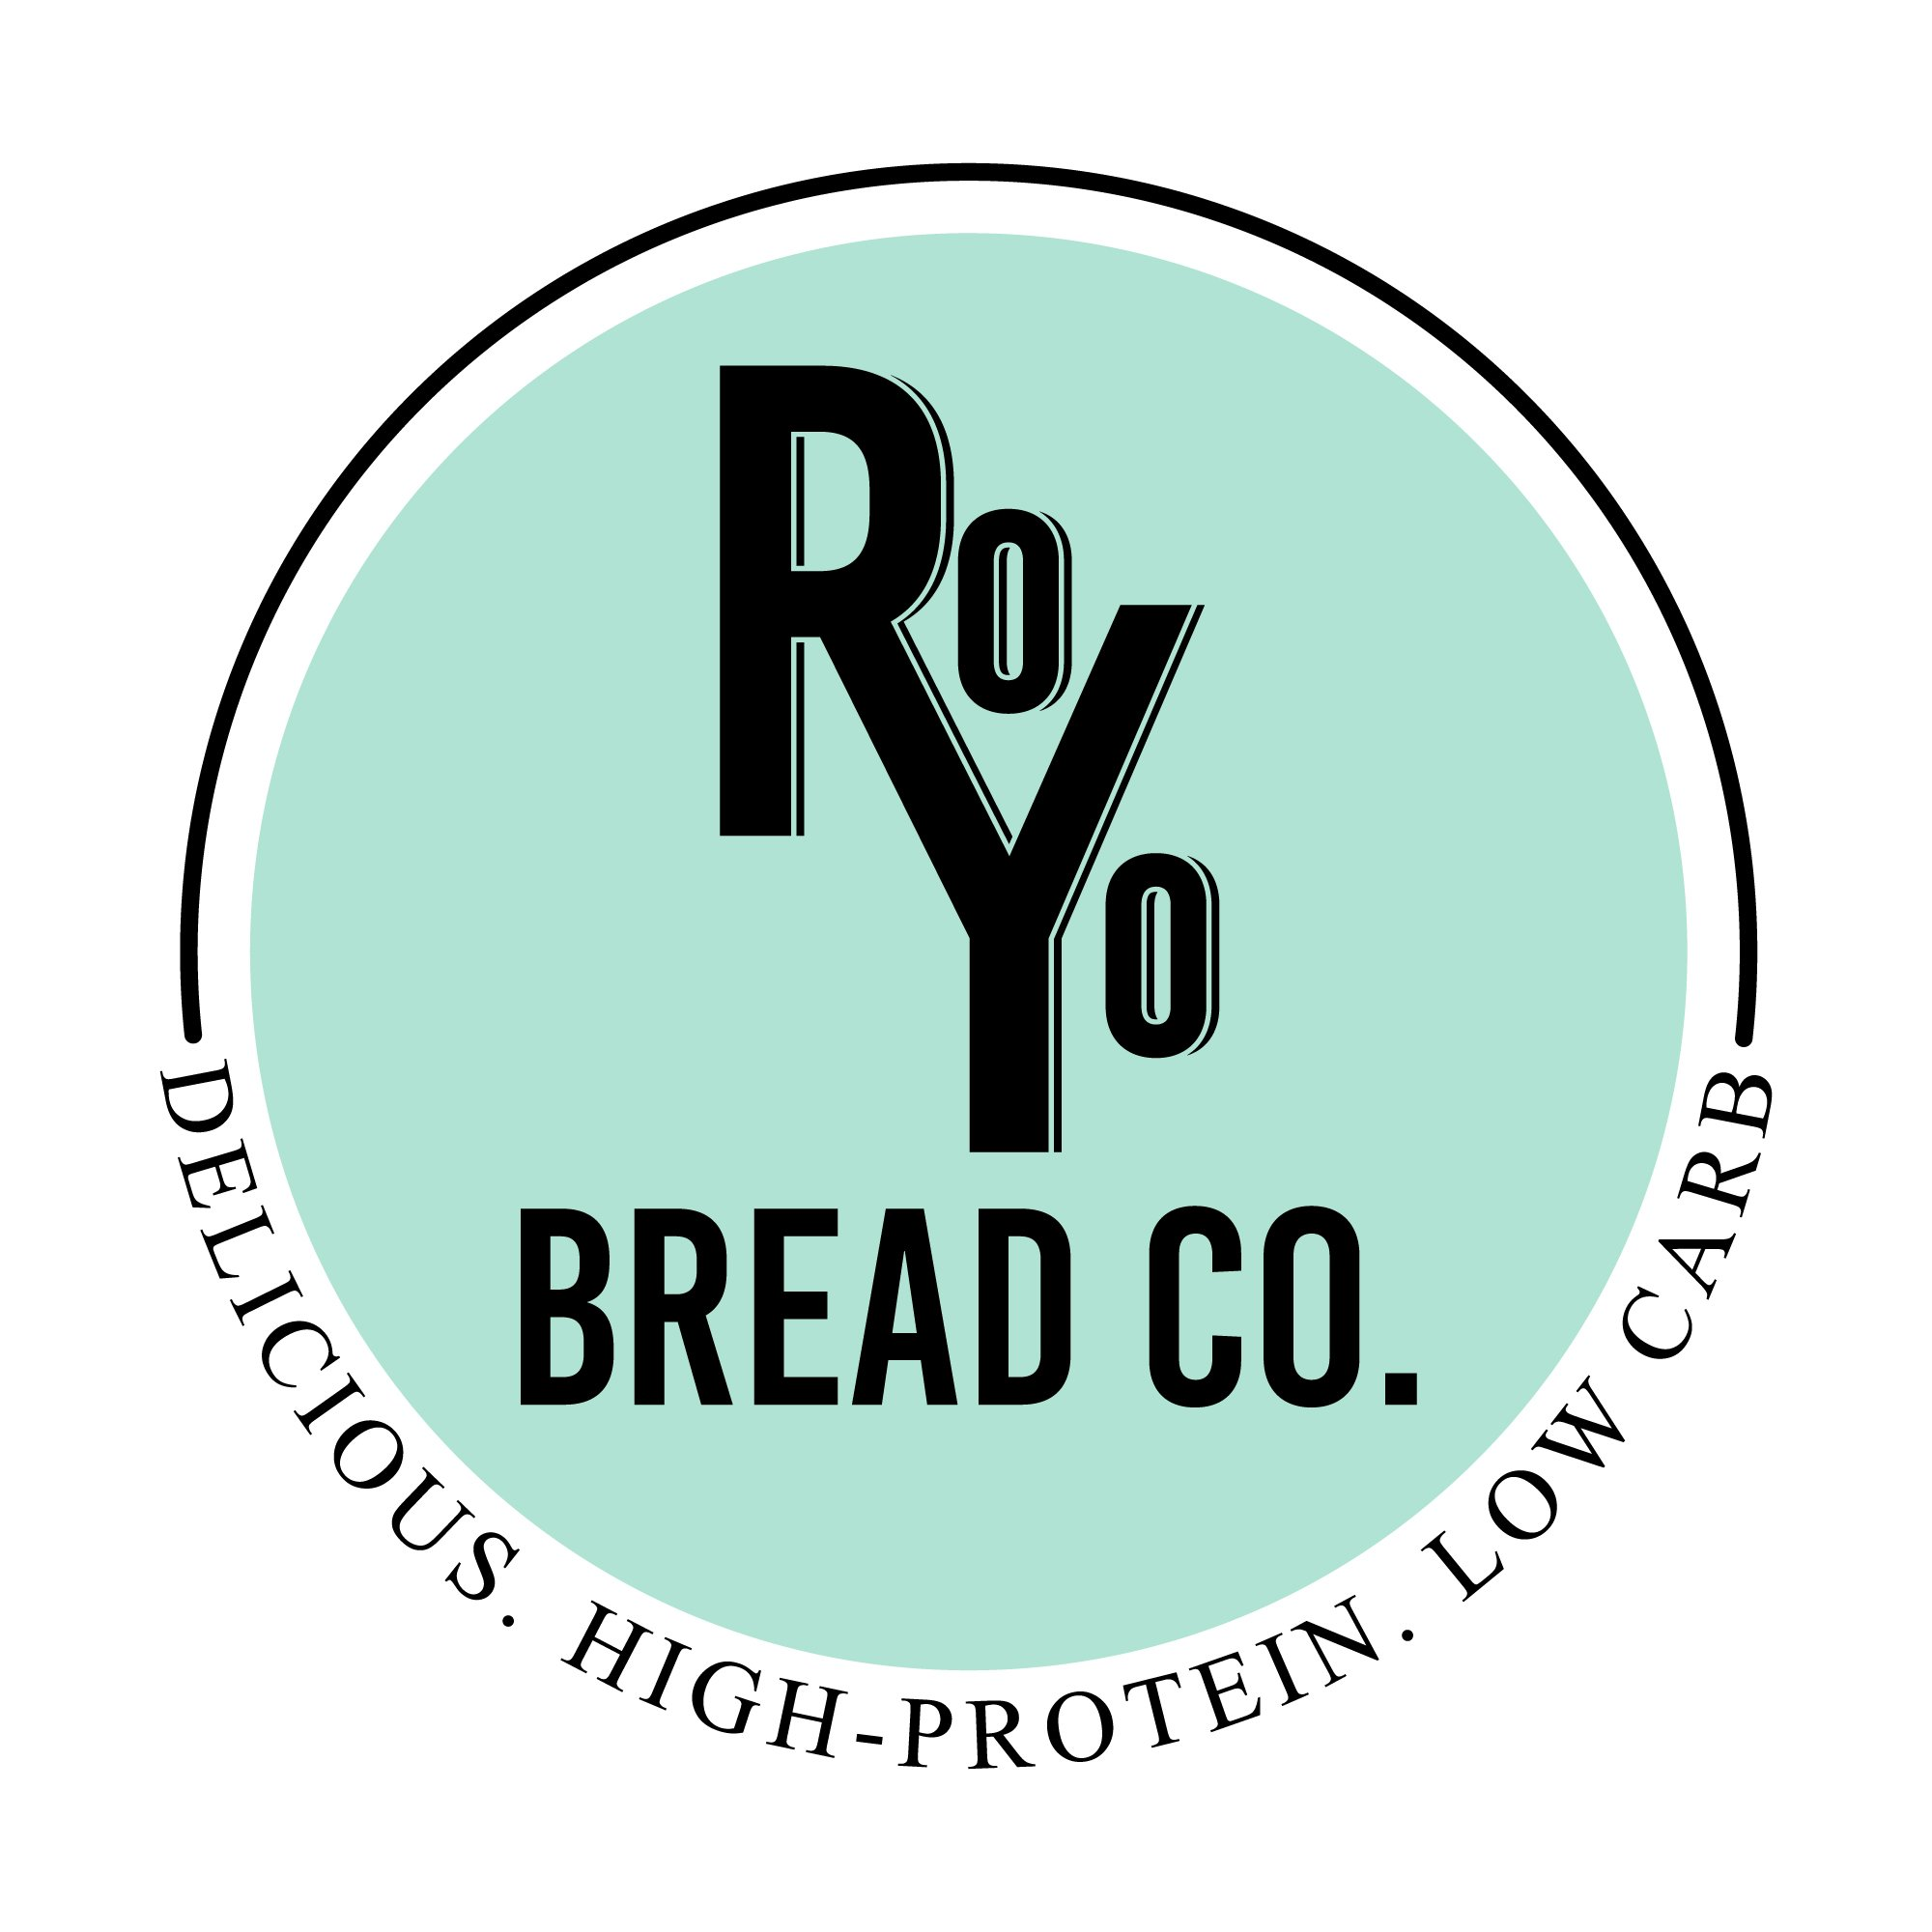 RoYo Bread defies expectations with ingredients aimed to benefit the human body